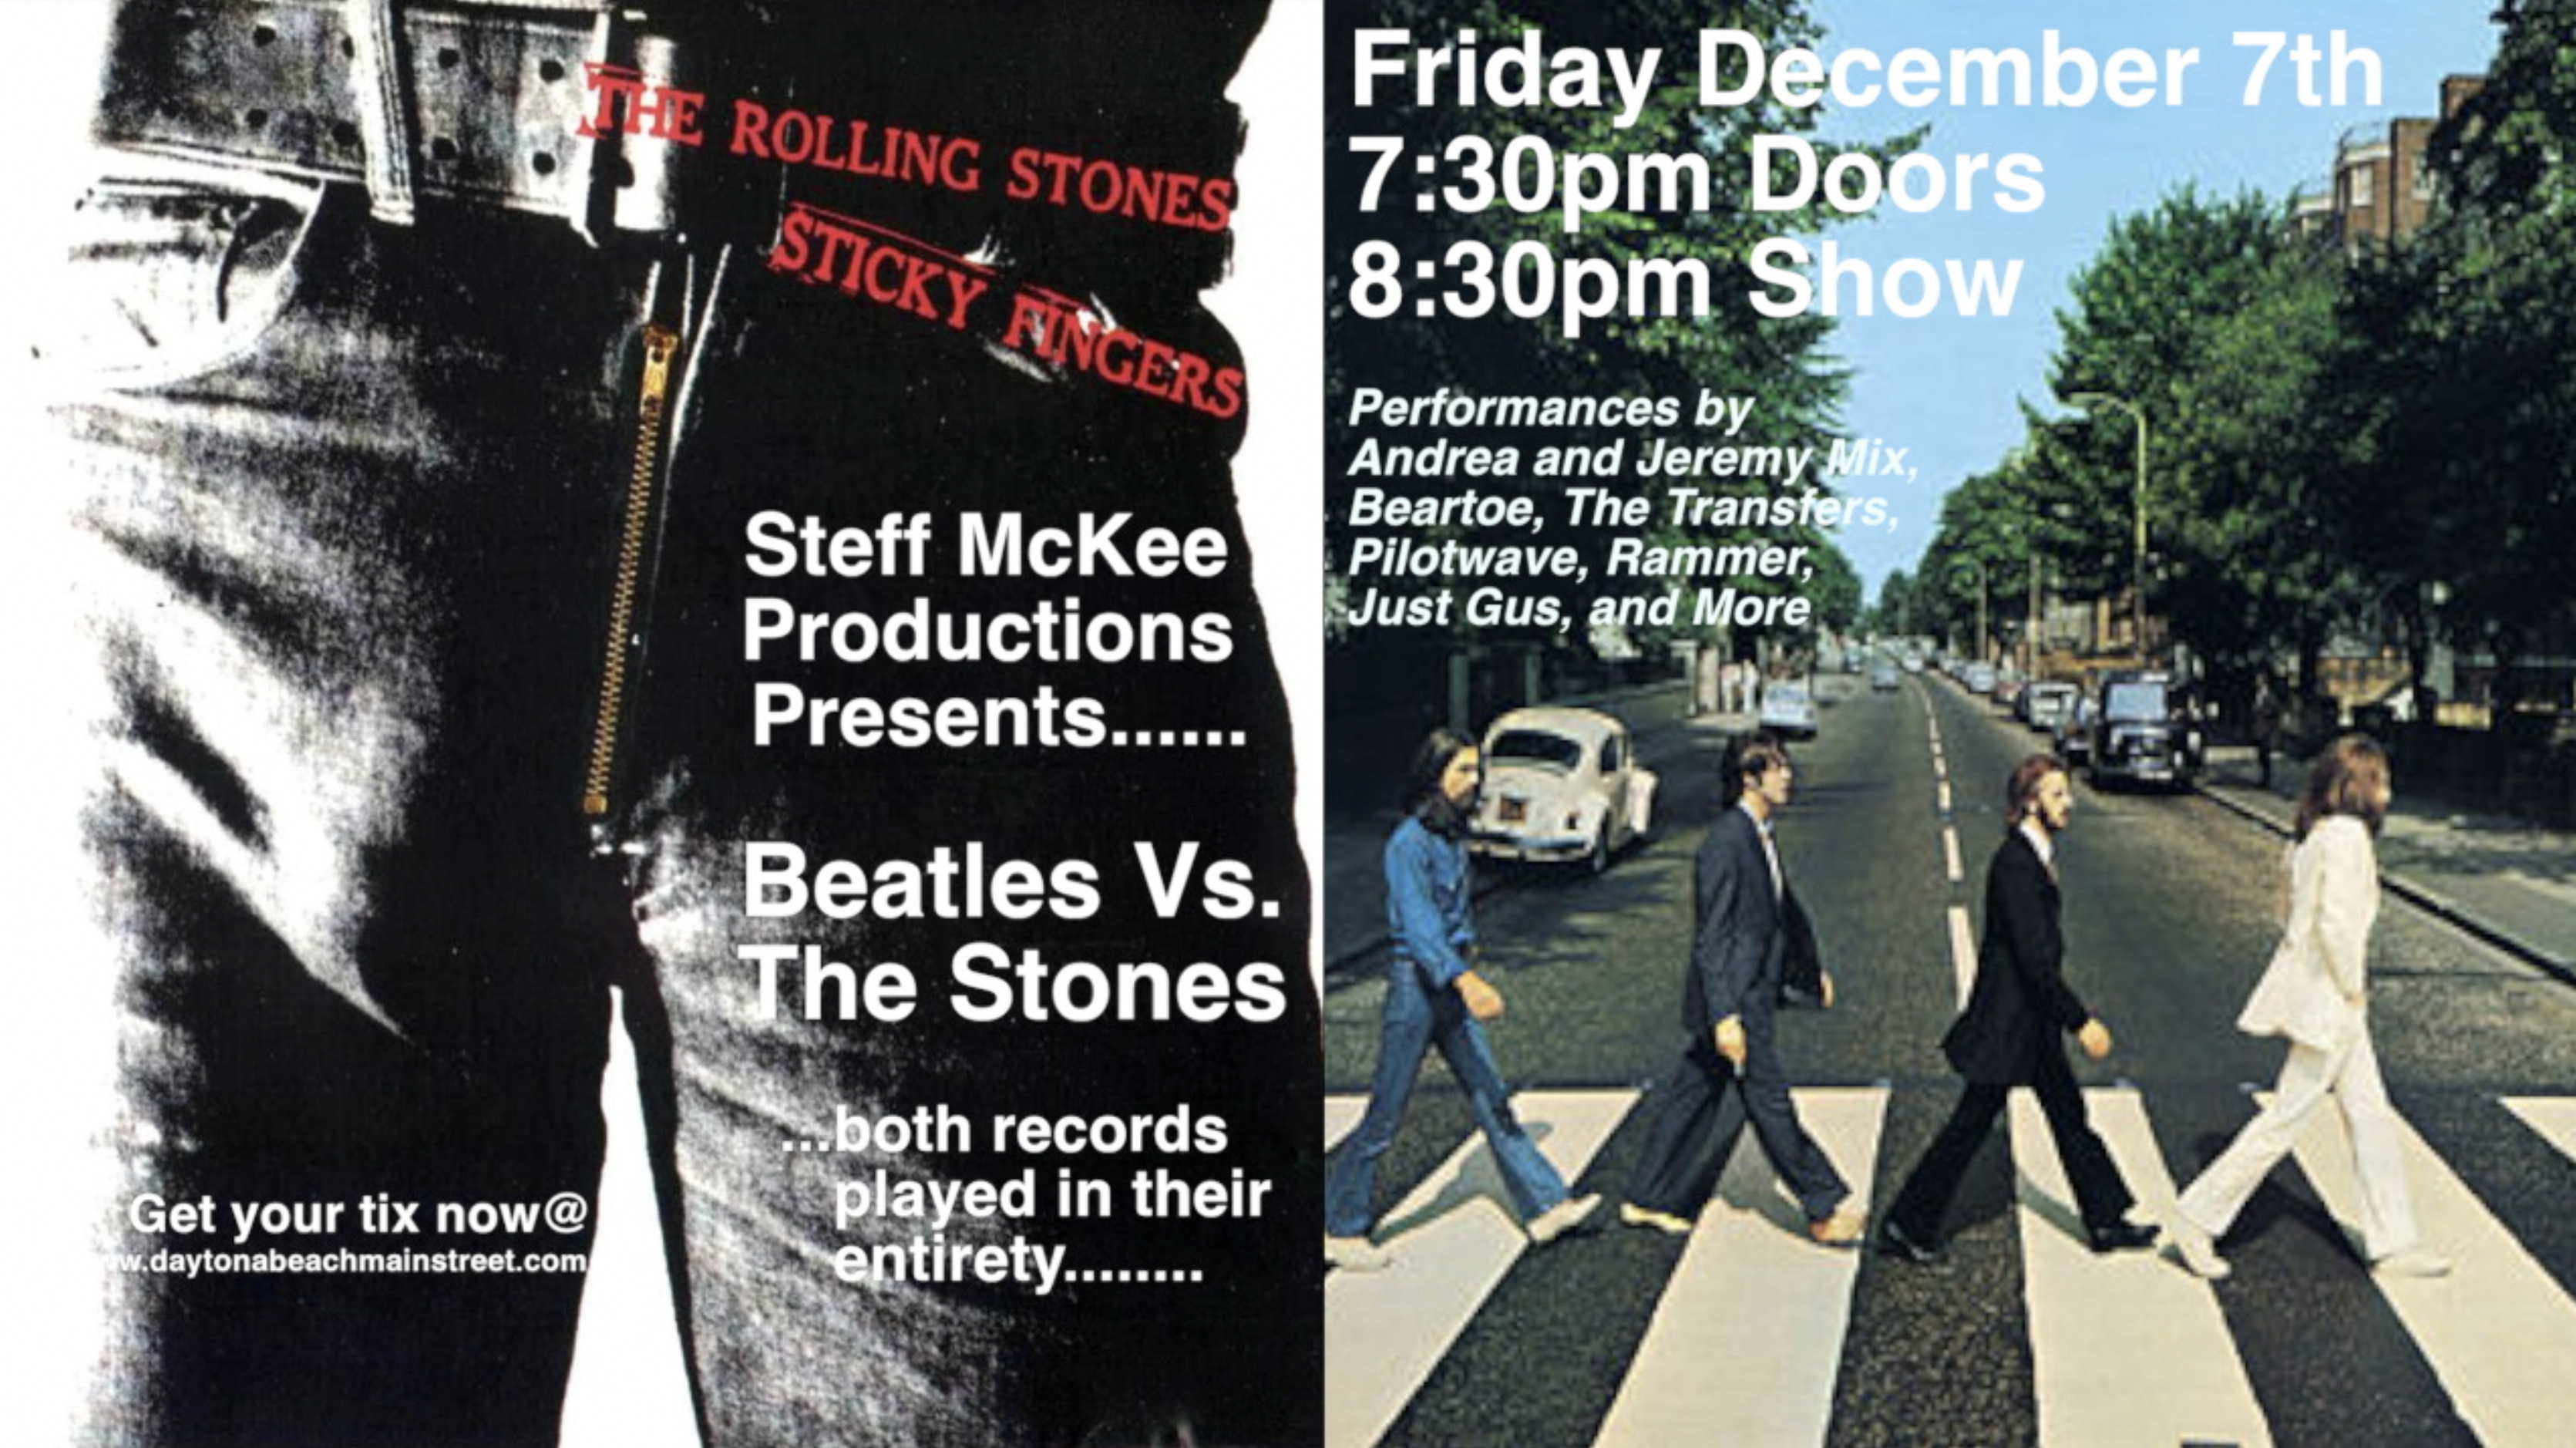 Sticky Fingers vs. Abbey Road